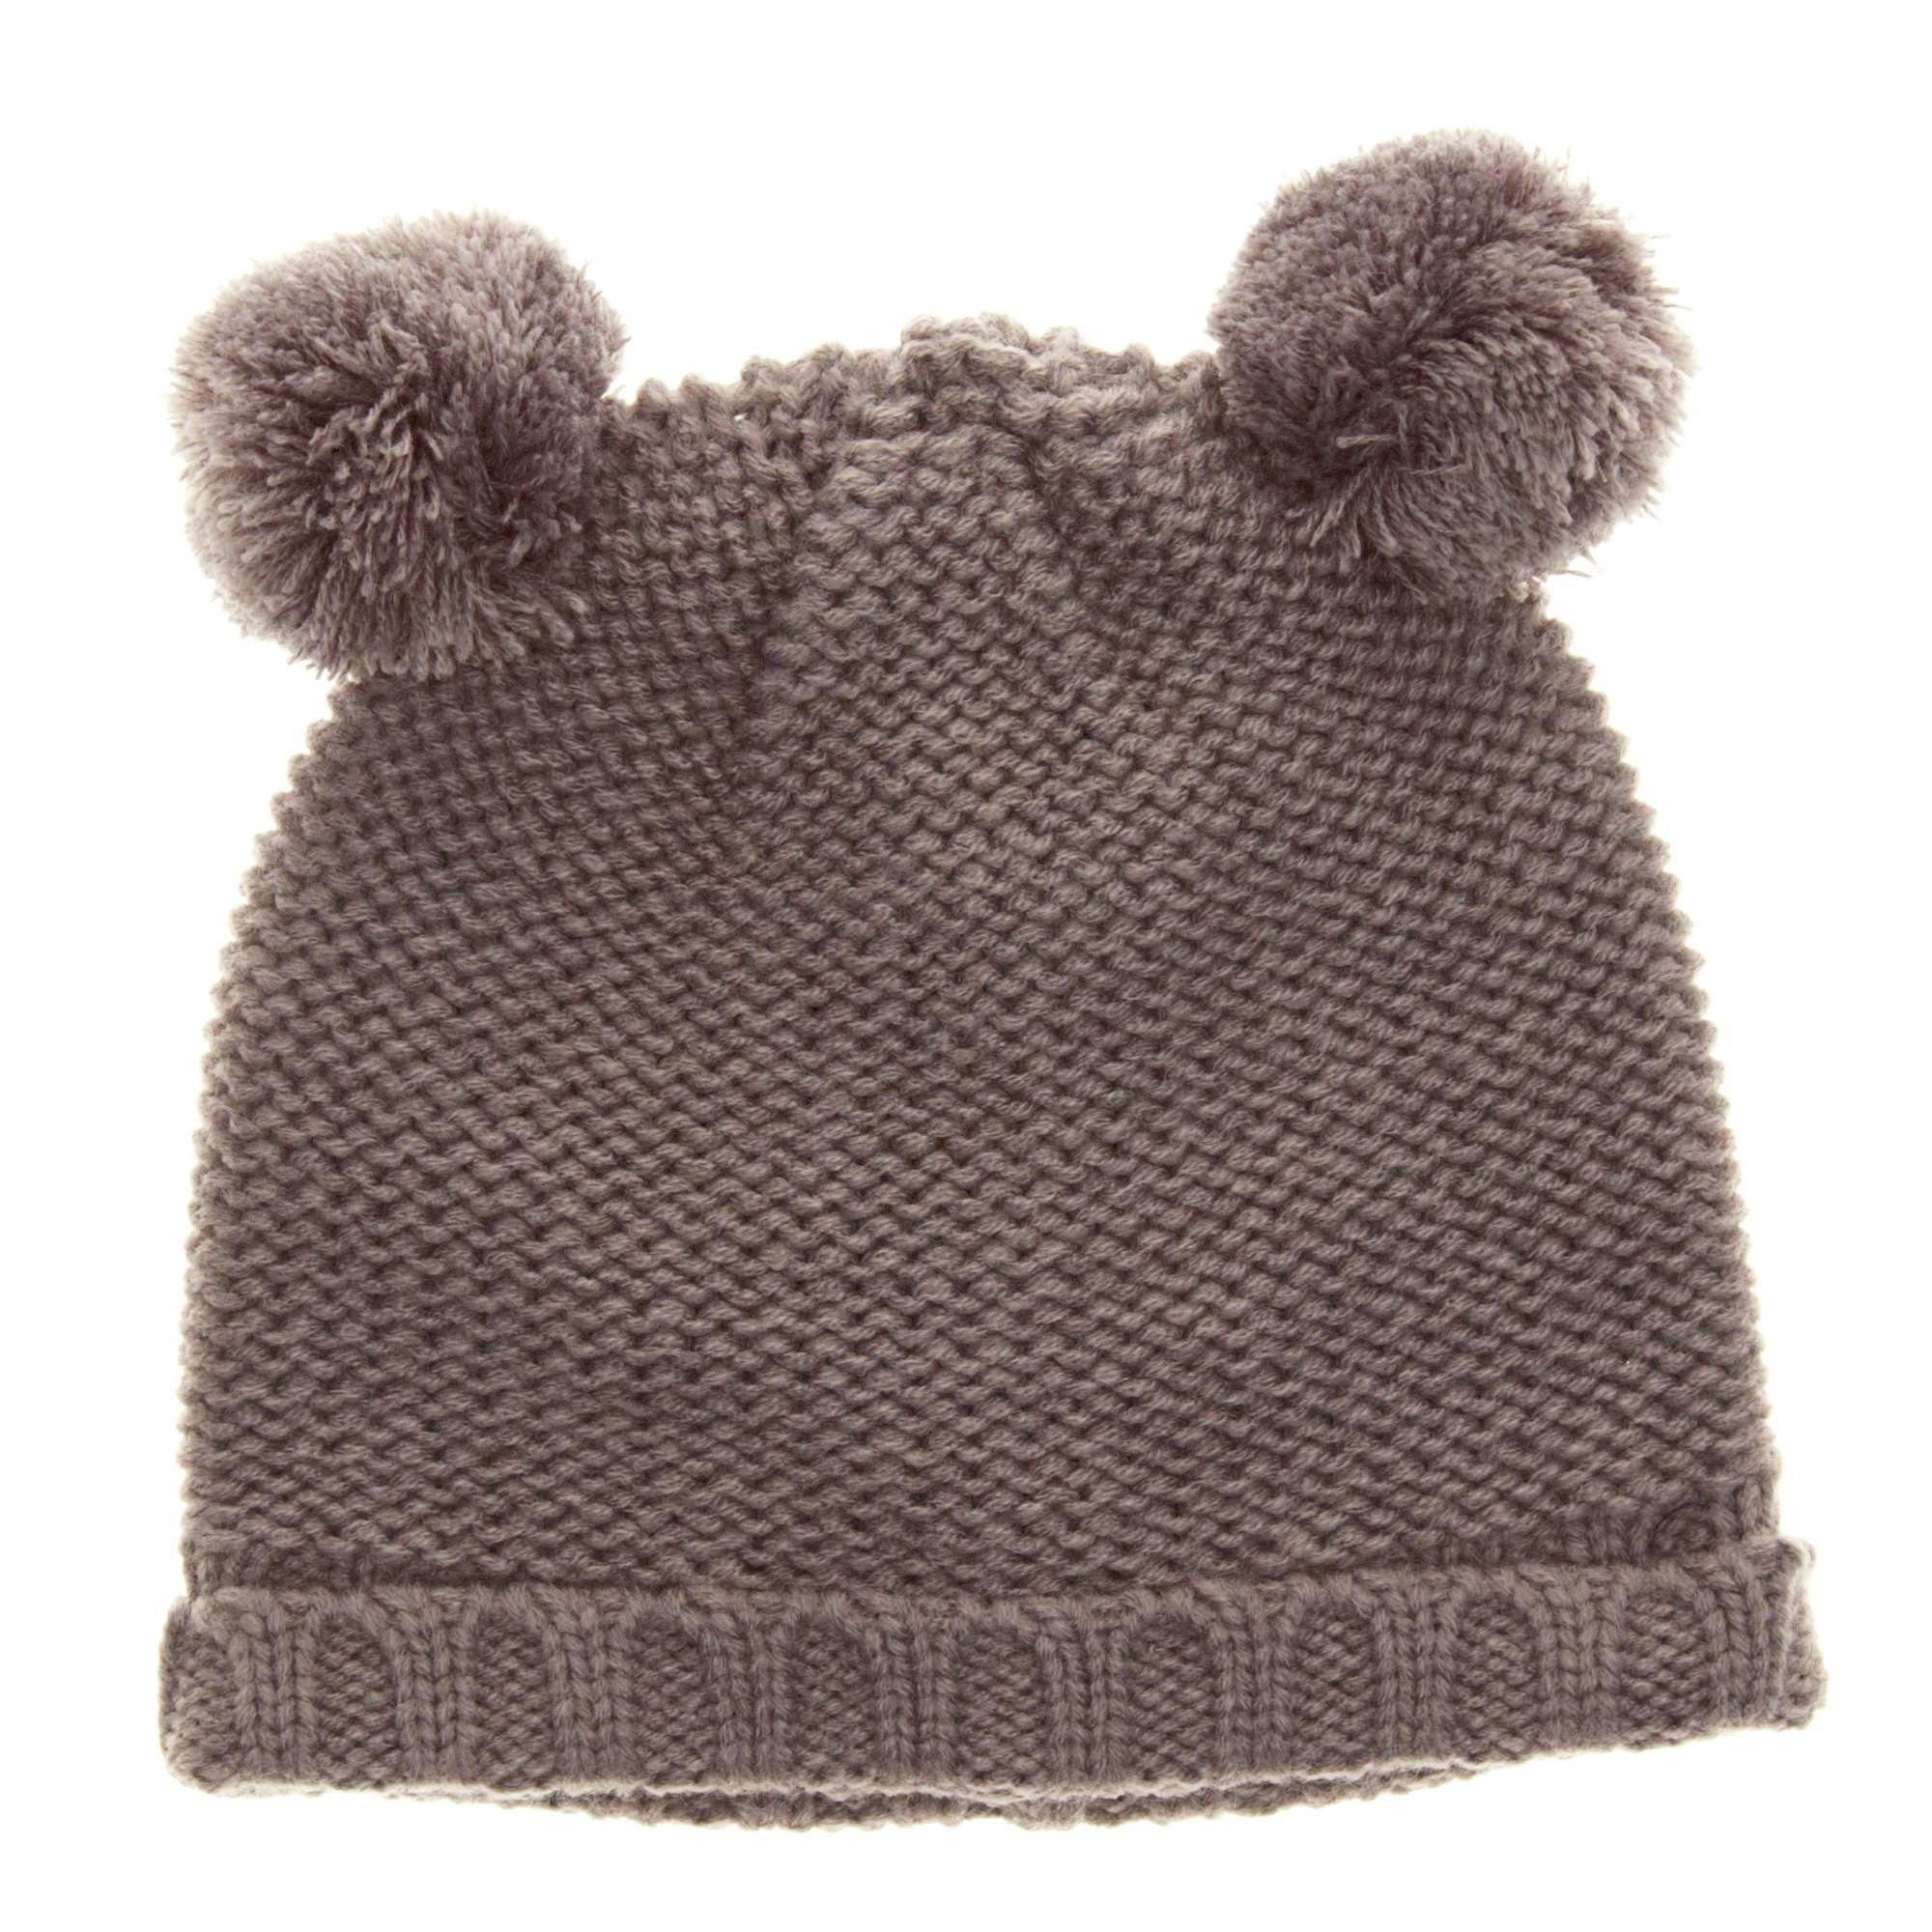 Fleece-lined knit hat with 2 pompoms Girls age 18 months to 5 ...